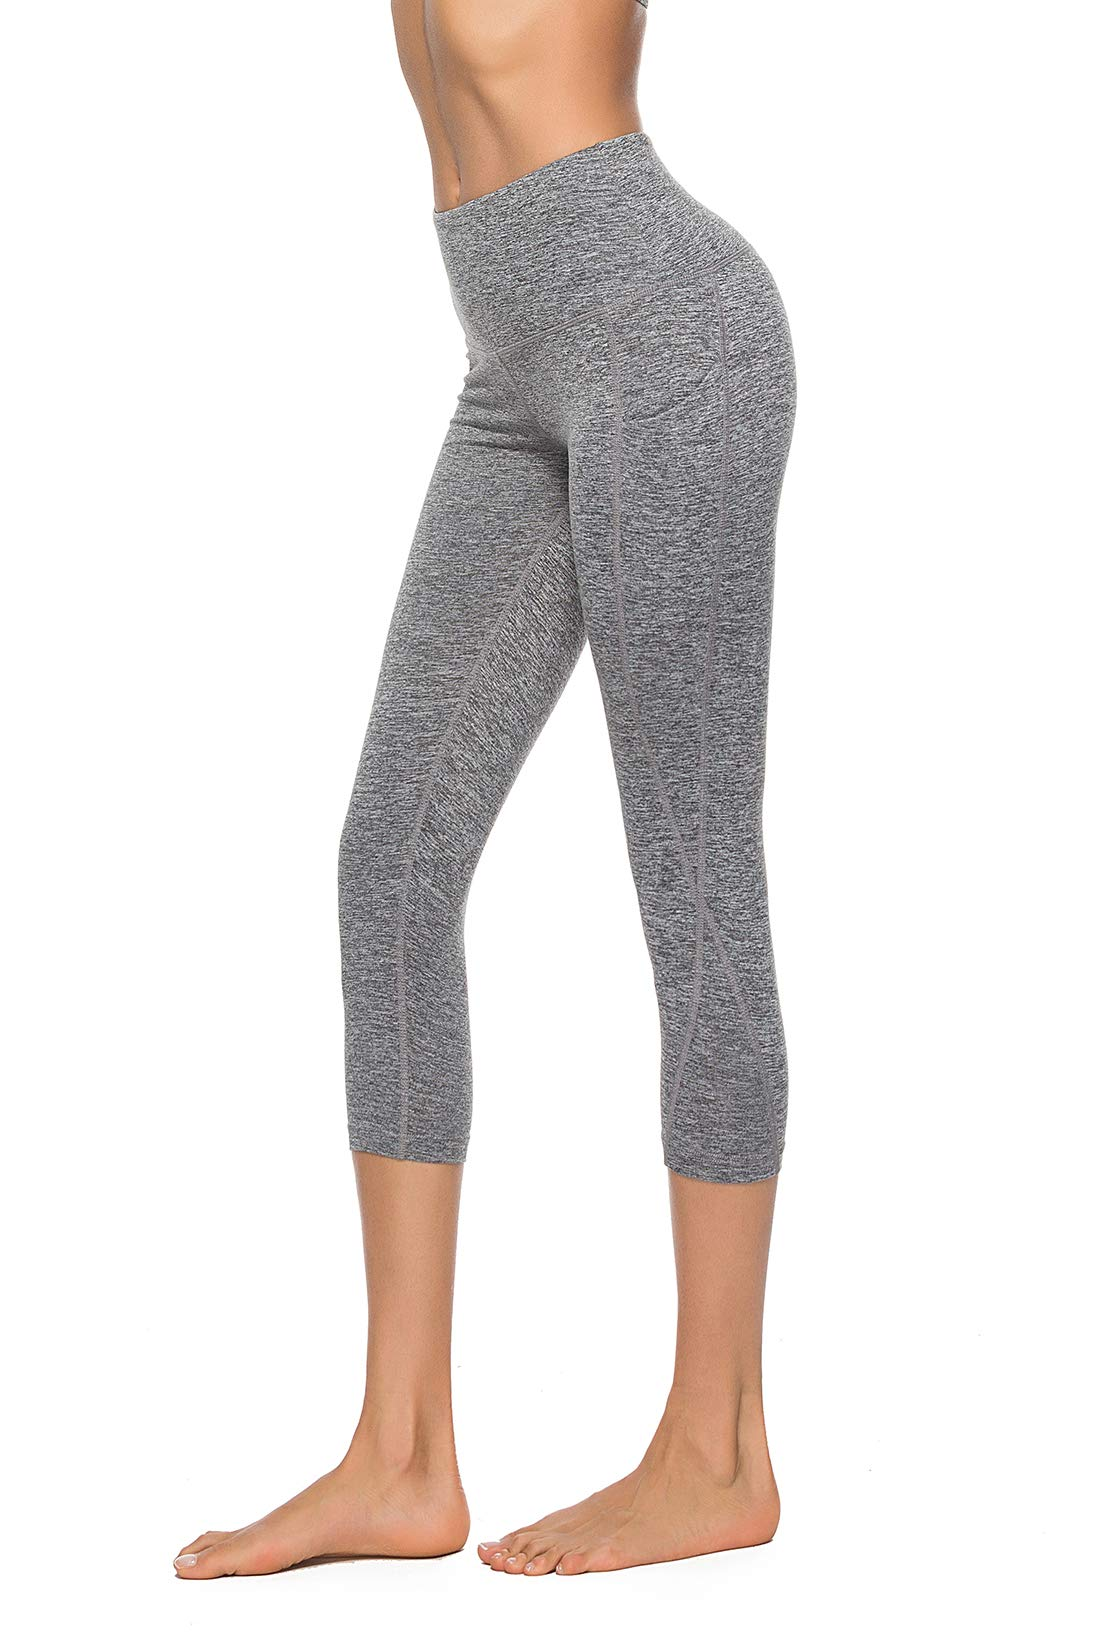 ZOANO Women's High Waist Yoga Pants with Pocket Workout Athletic Leggings